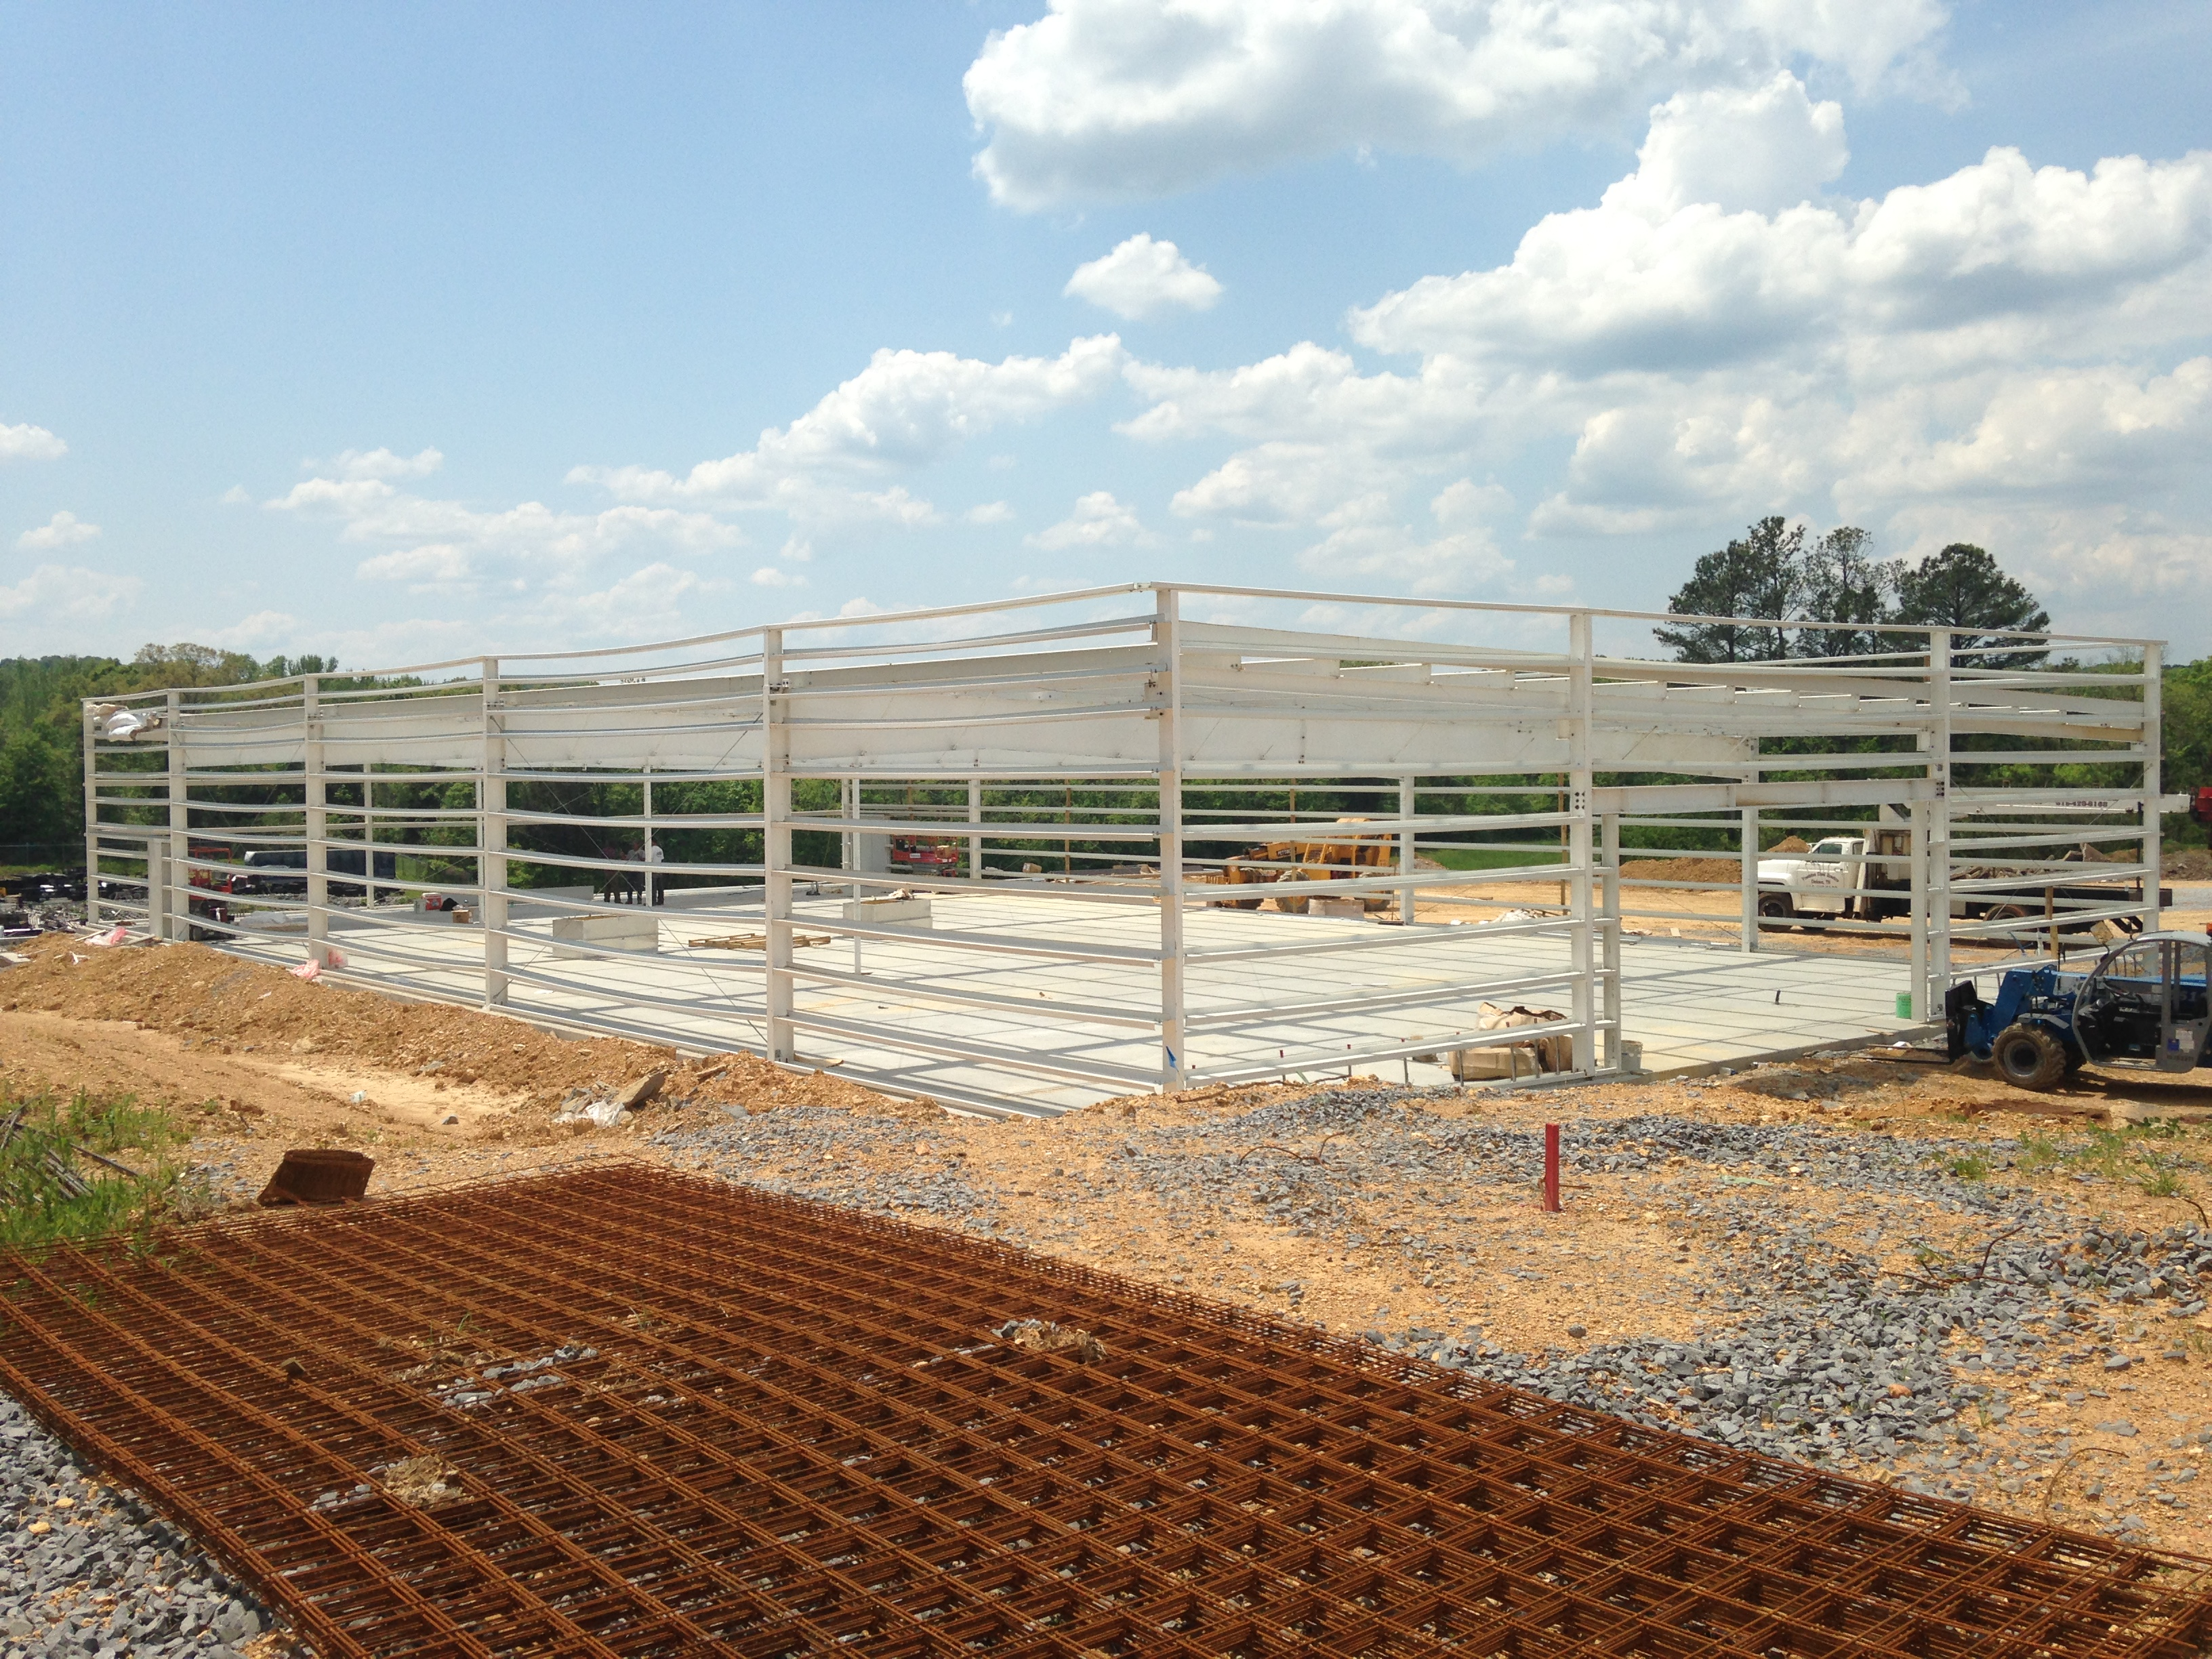 Commercial Construction at 120 W. Kingston Springs Rd.